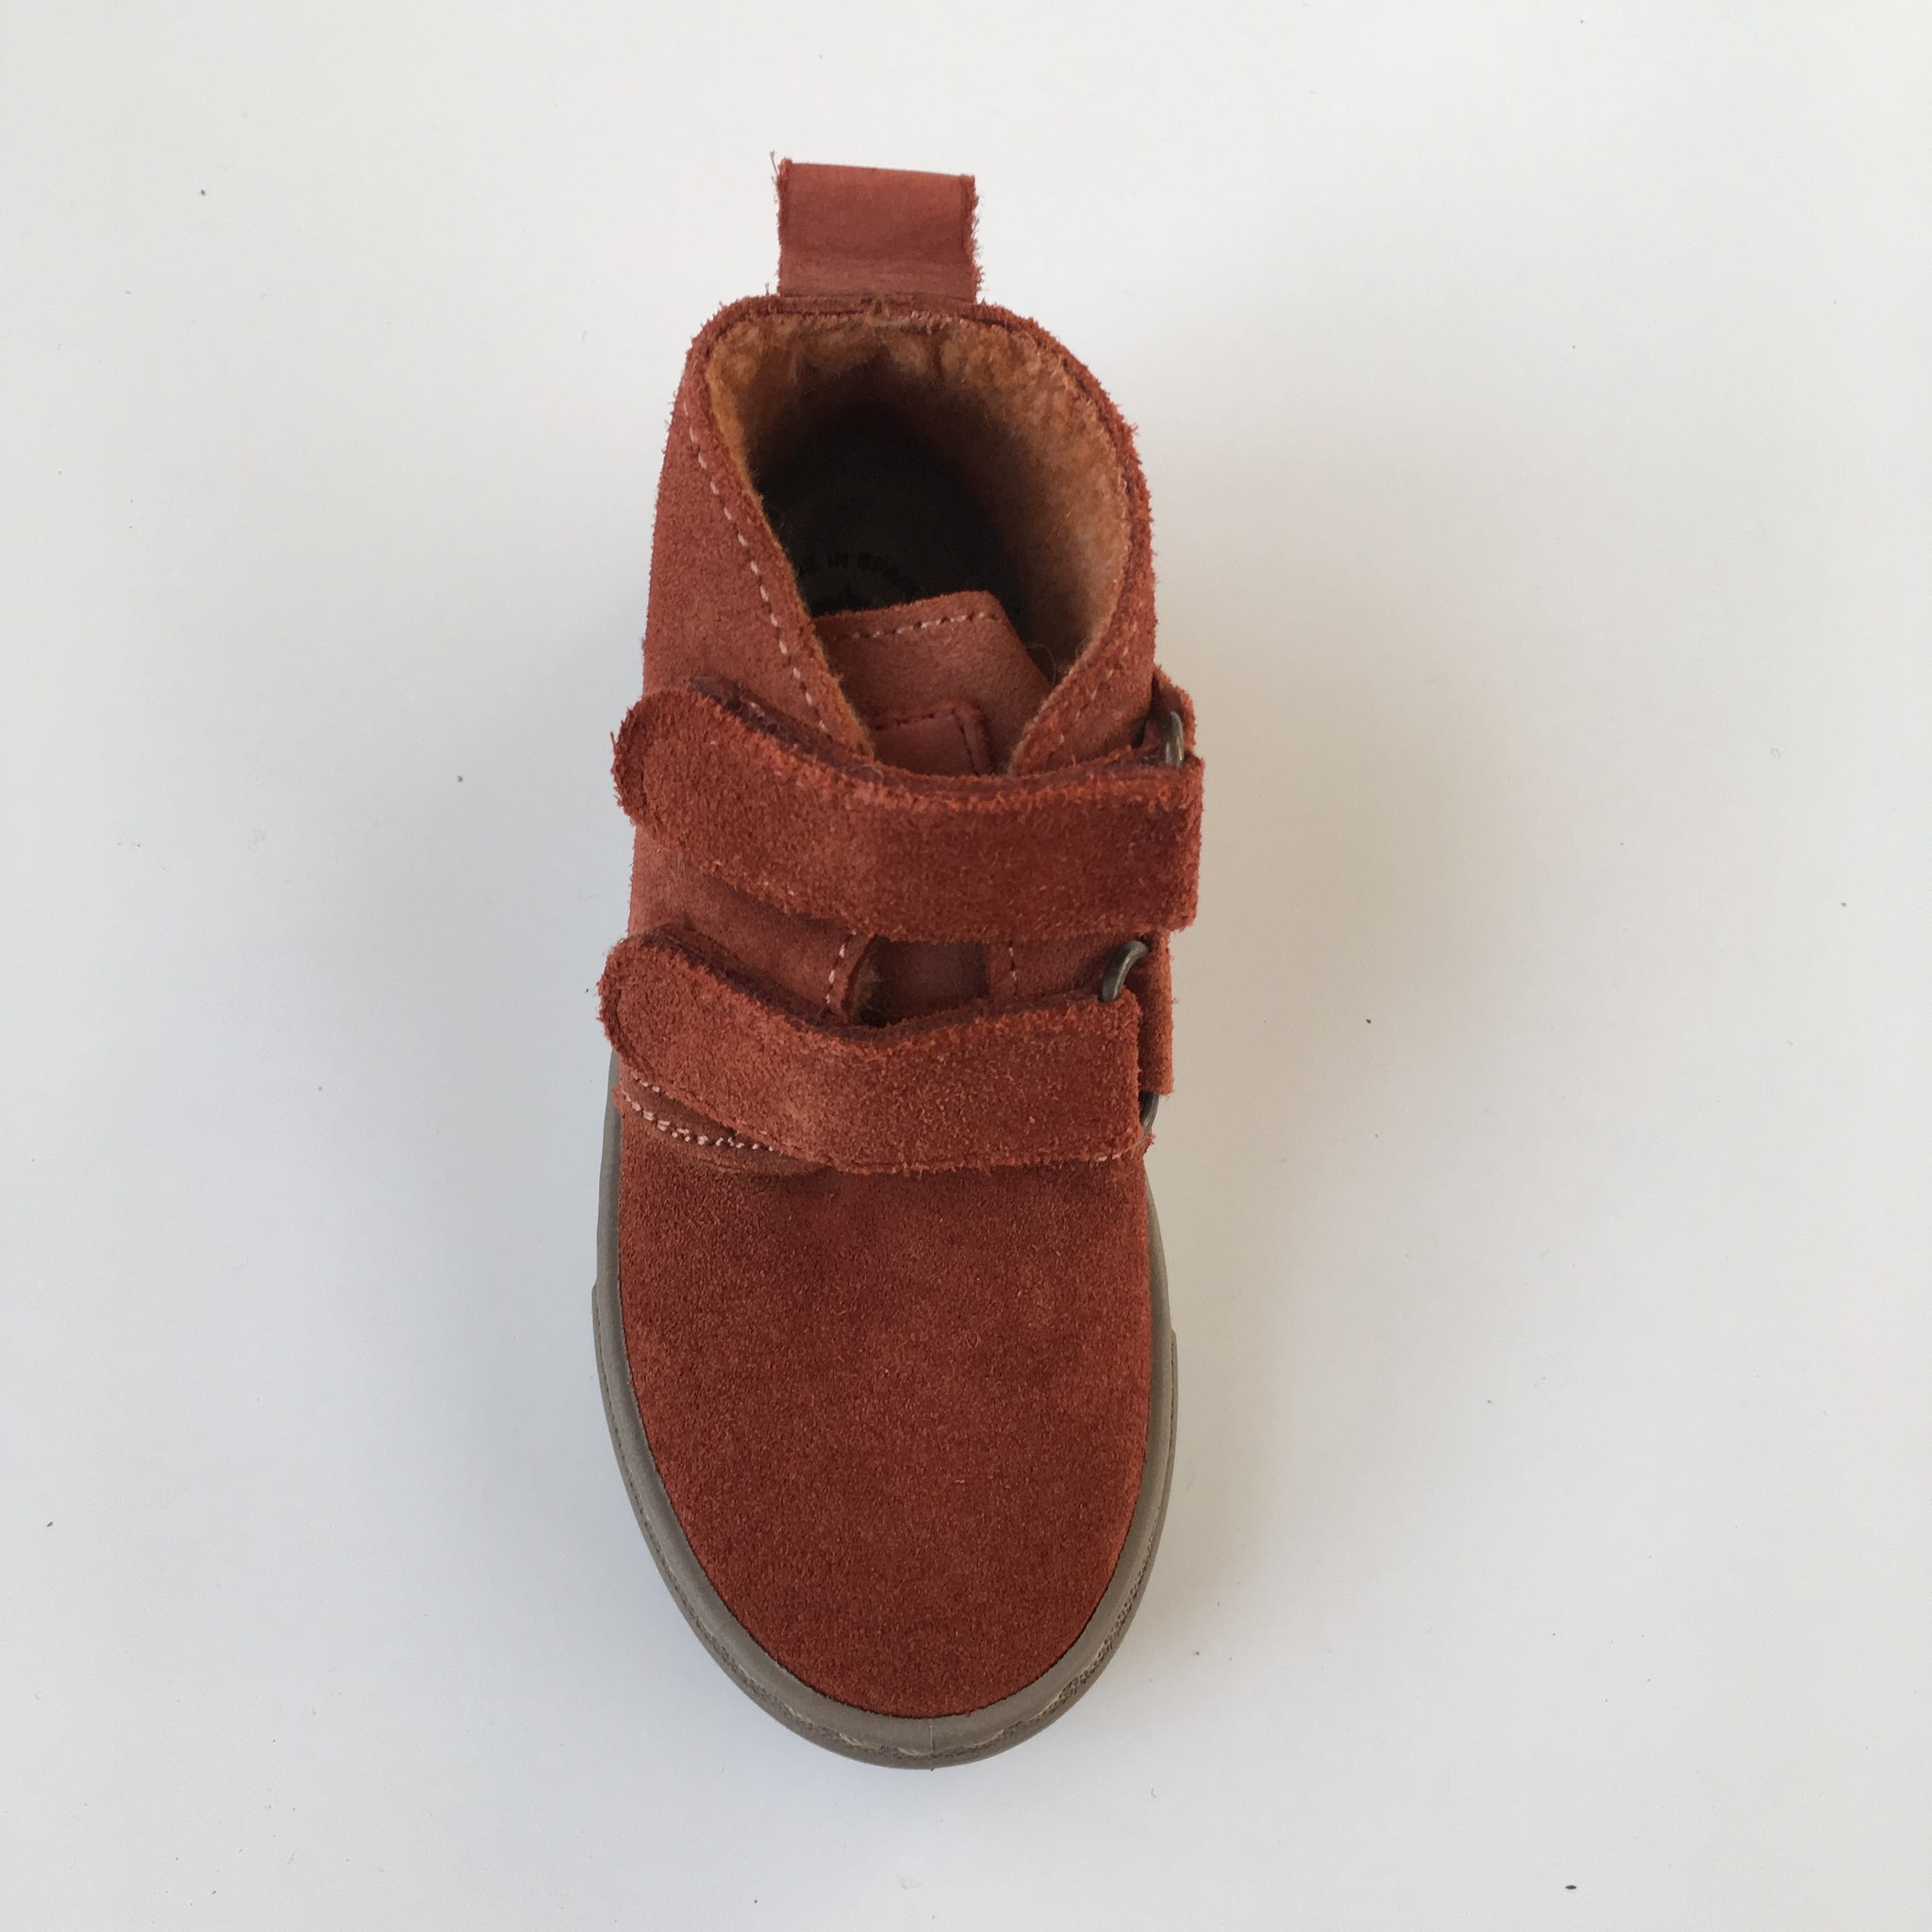 NATURAL WORLD suede ankle boot velcro - wool lined ALAIR - 100% natural rubber sole - rusty orange - 25 to 38